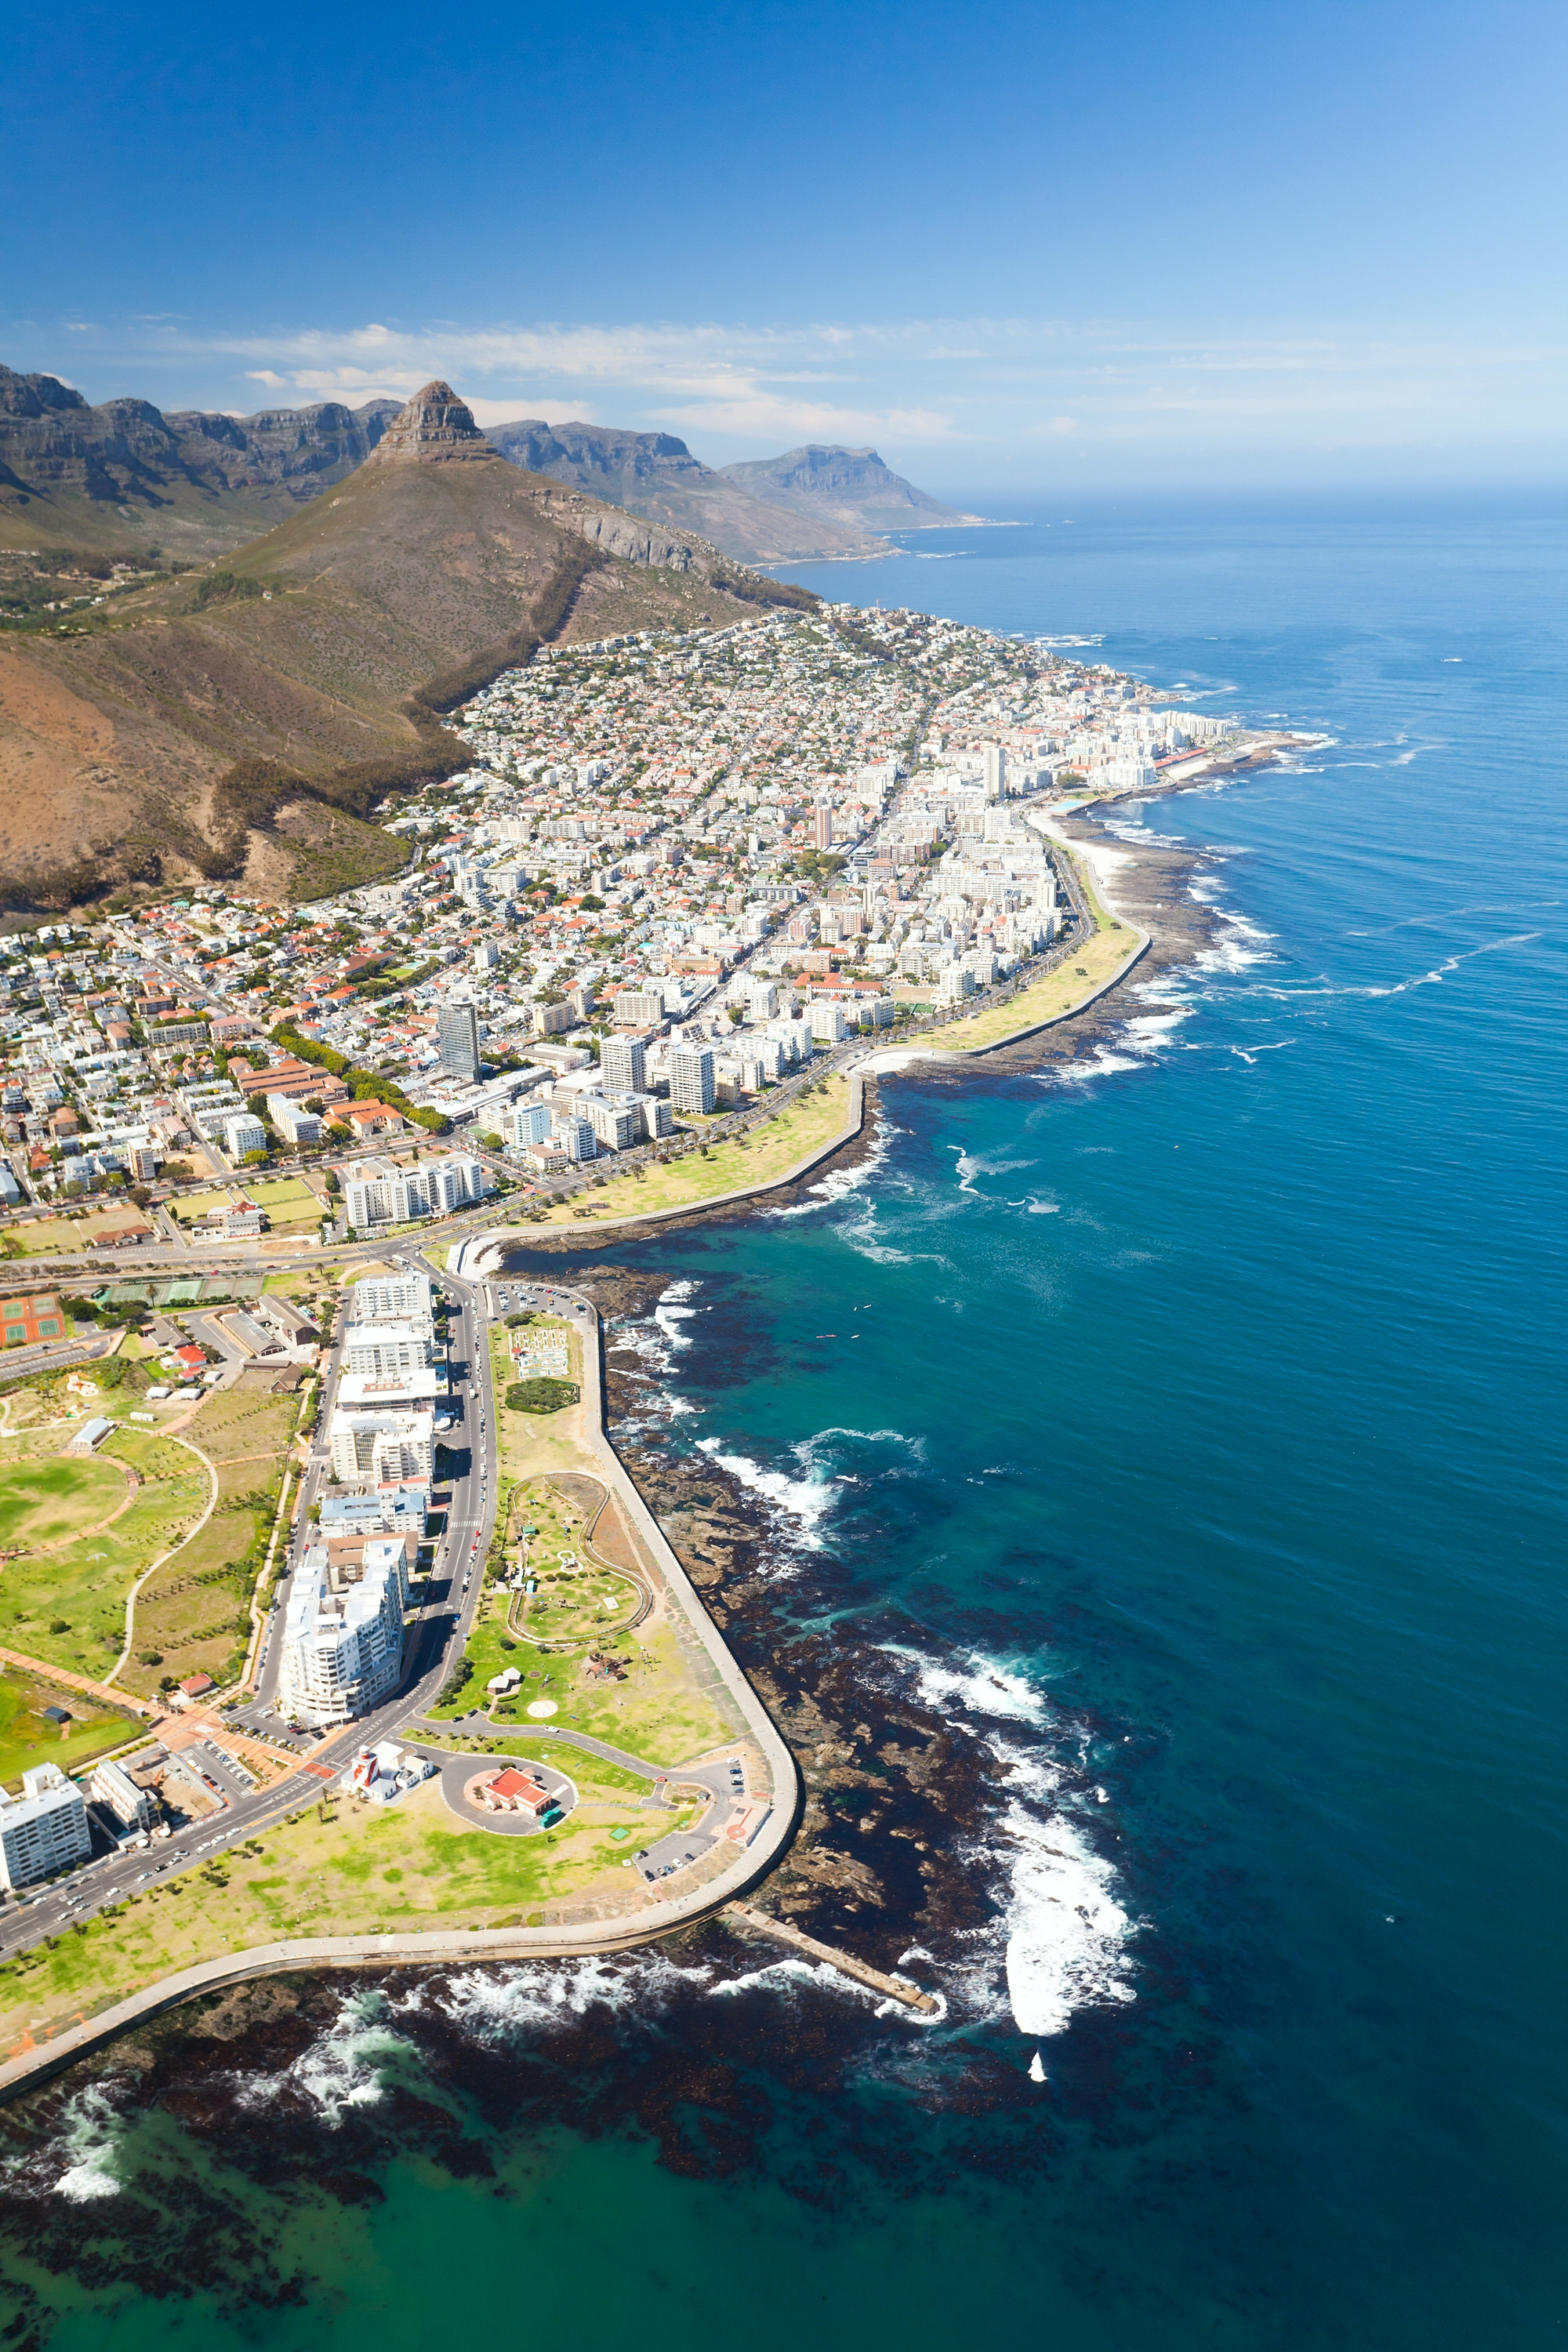 Aerial shot of the suburb of Sea Point under Lion's Head hill